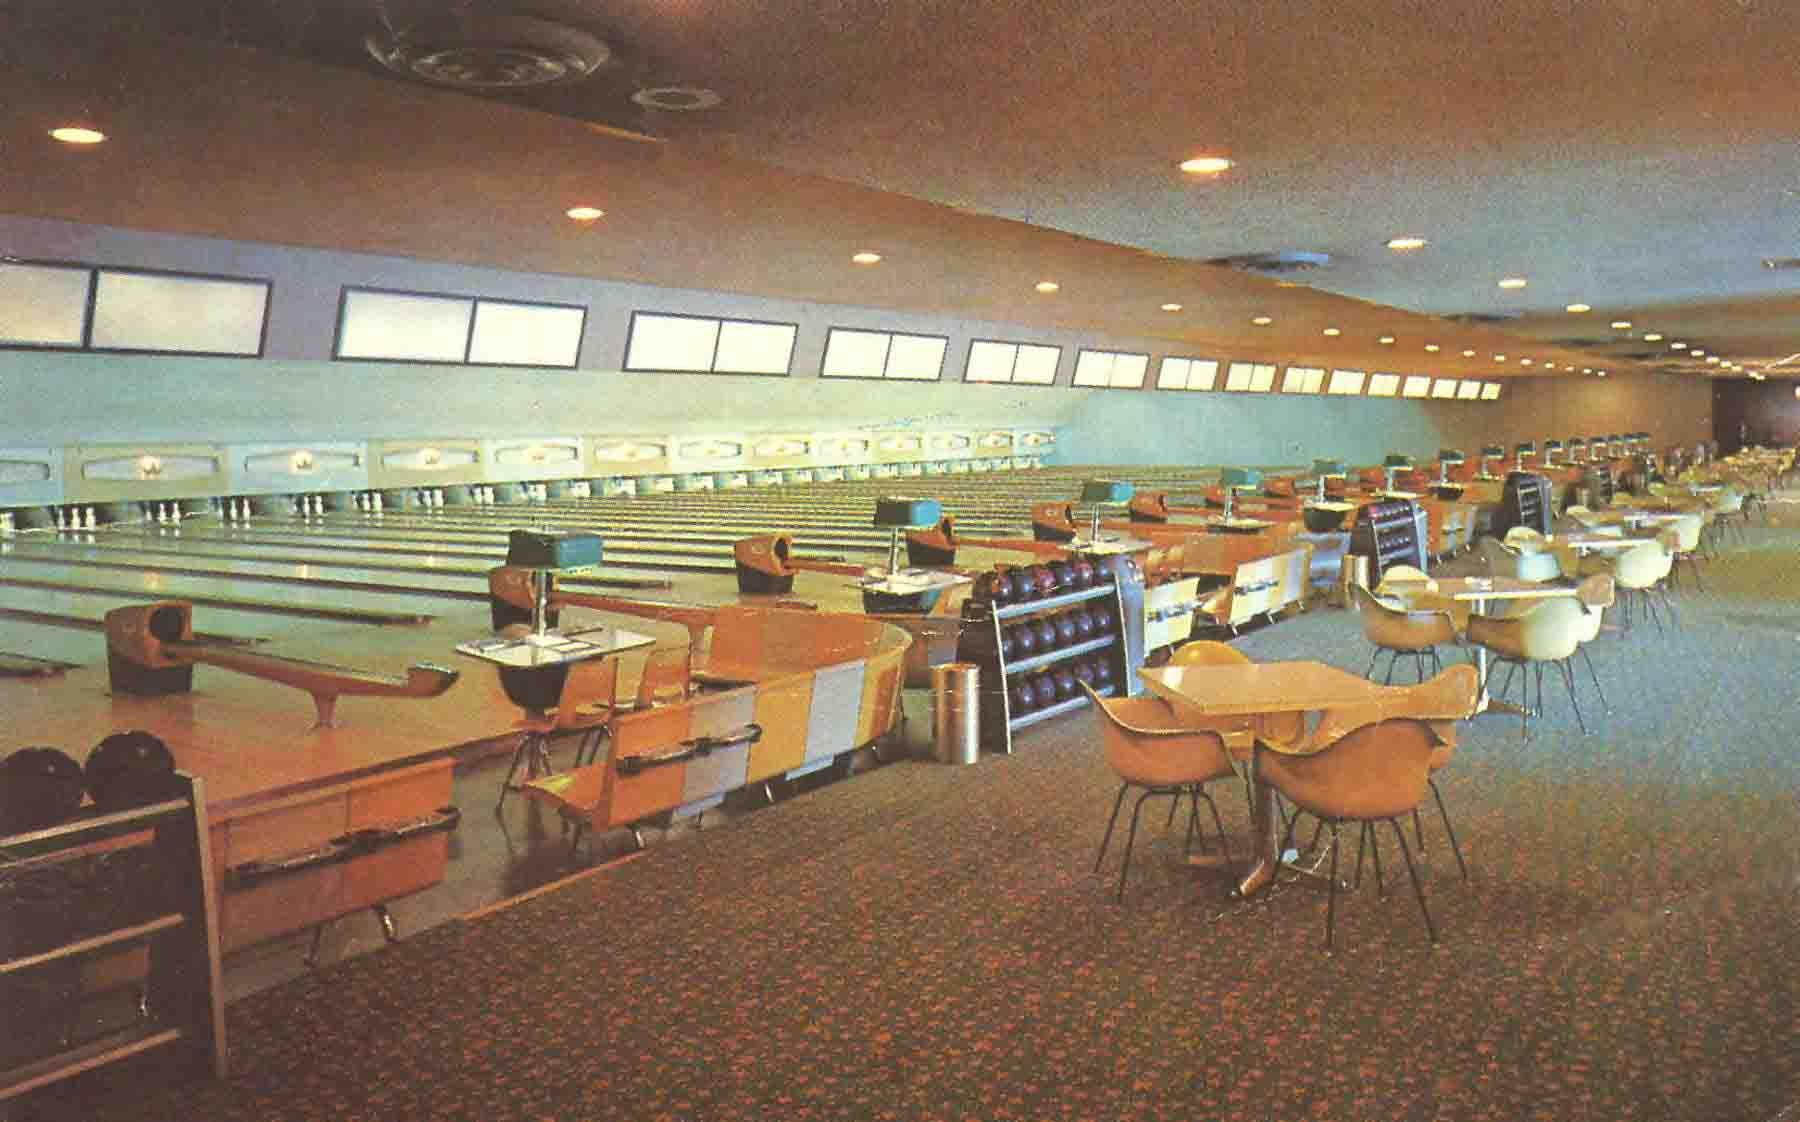 A Rare Photo Of River Bowl Which Became Brunswick Bowling And Is Now The Whole Foods On River Road This Photo Was Brunswick Bowling Bowling Alley Bowling